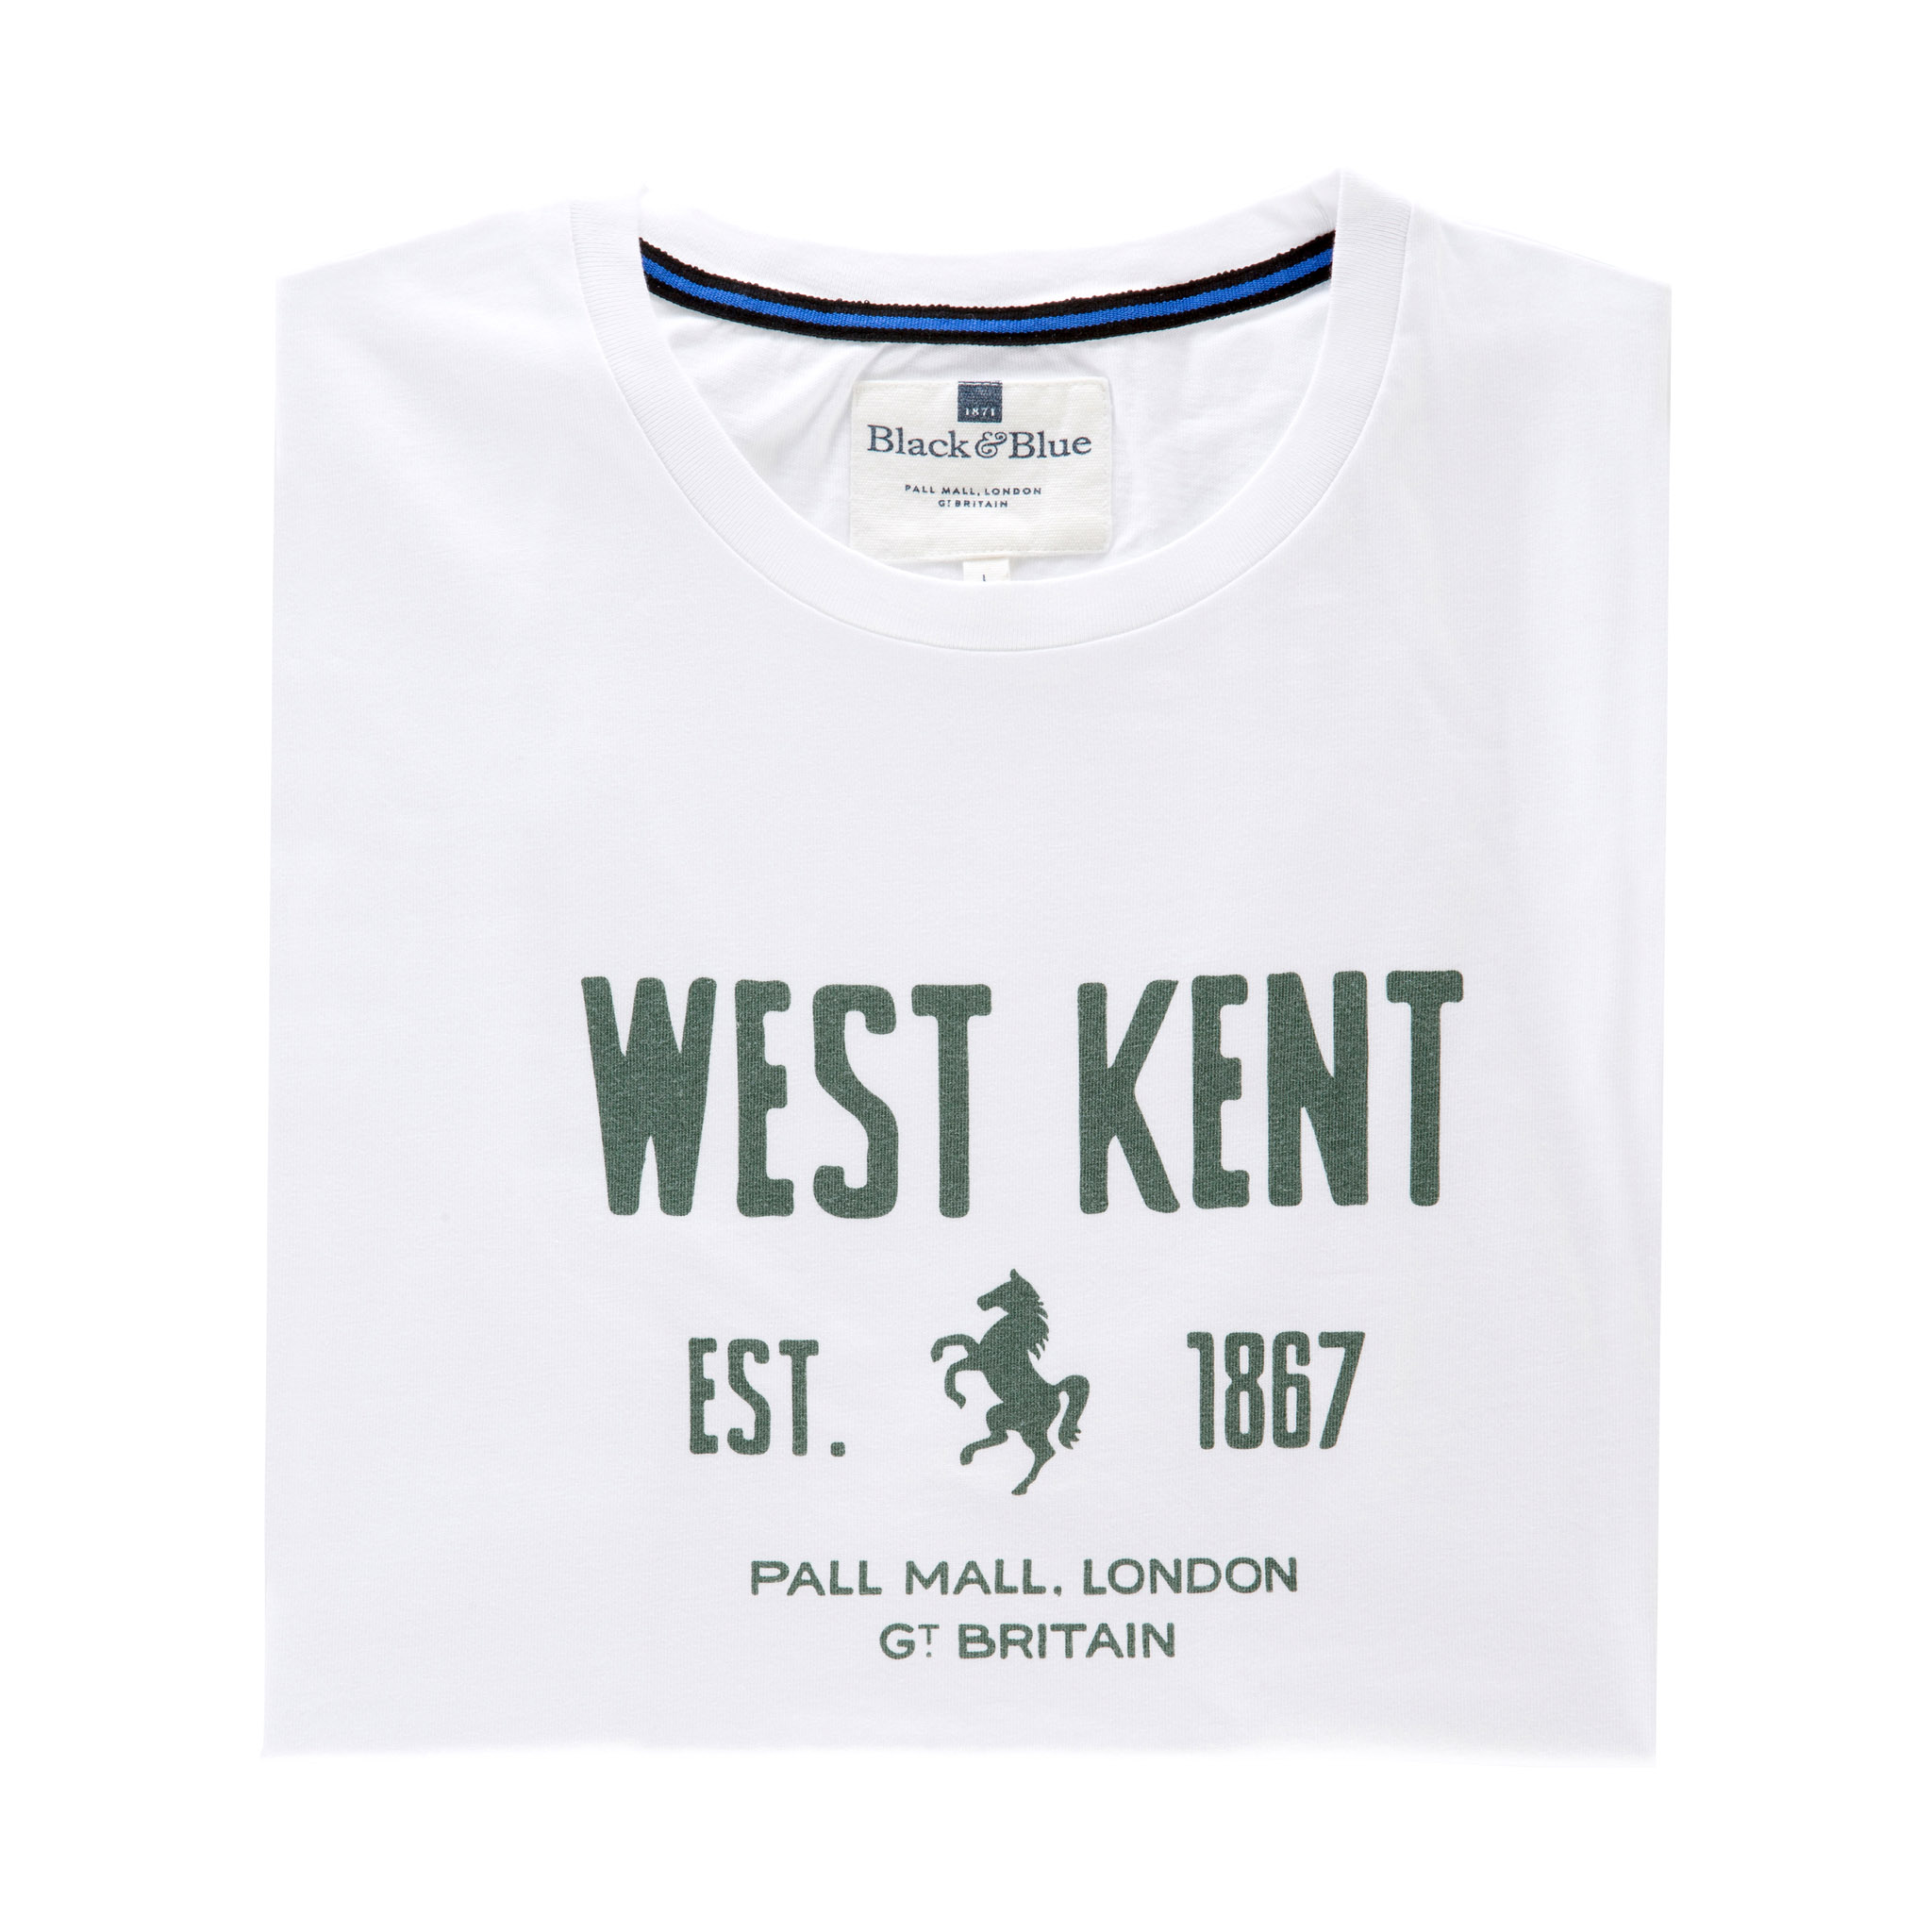 West Kent White T-shirt - folded